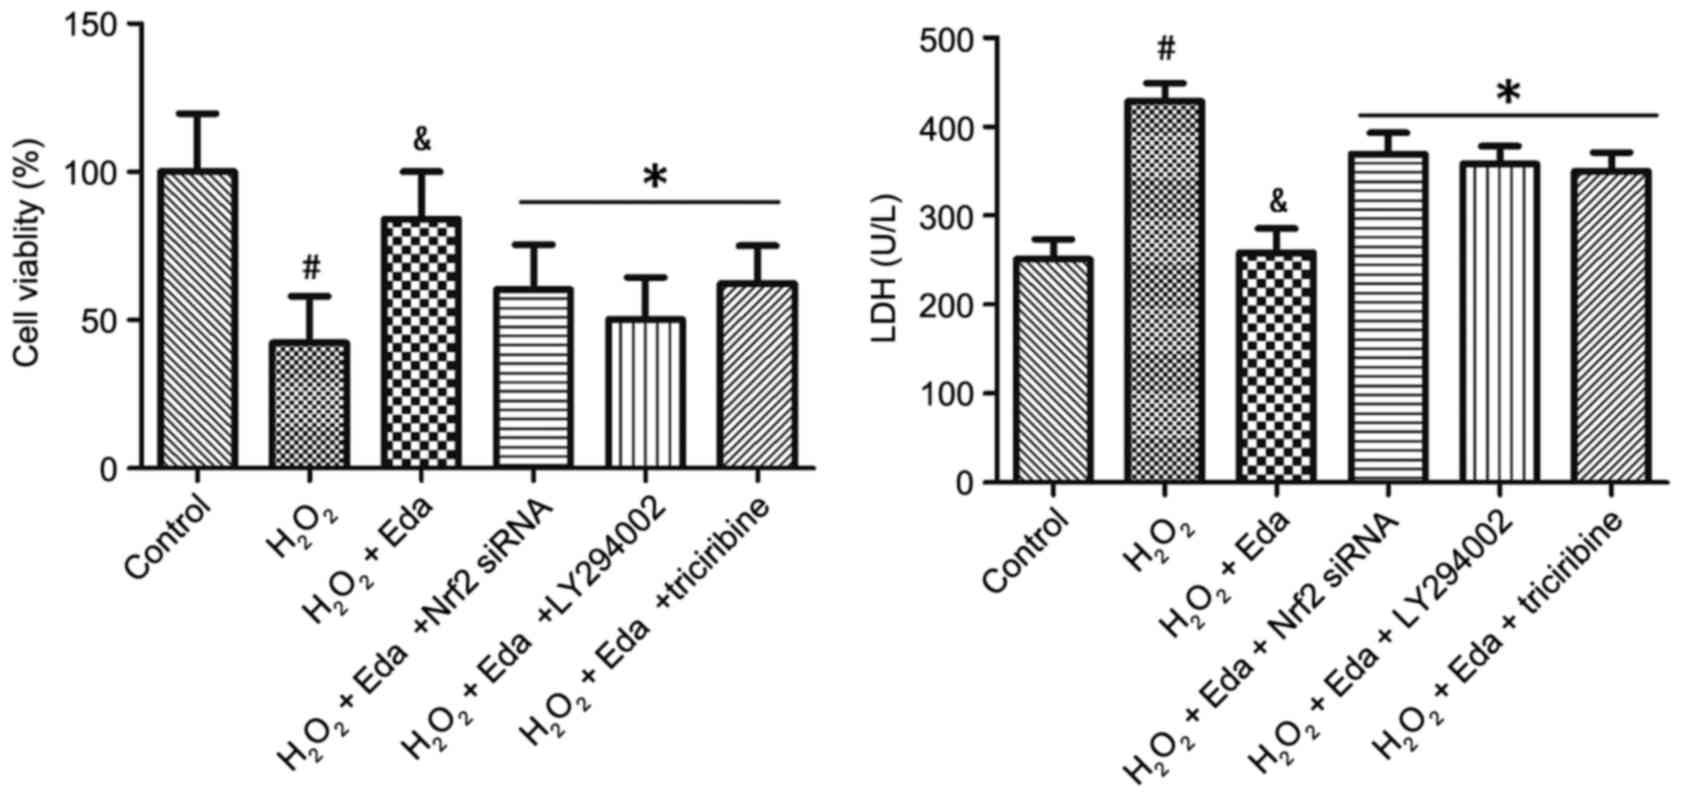 Edaravone protects the retina against ischemia/reperfusion